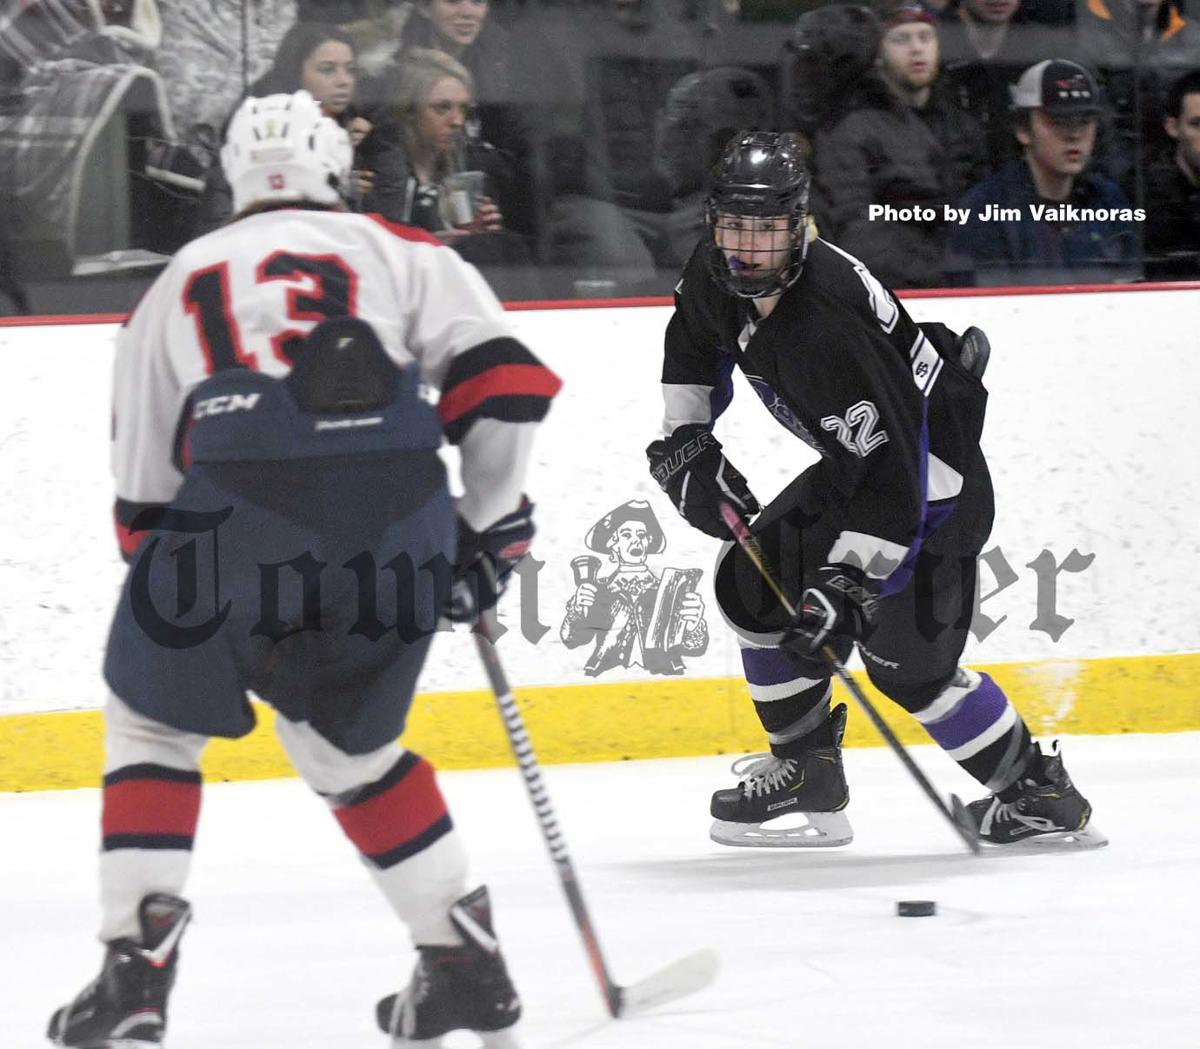 Shawsheen Tech's Brady McFadden tries to make a move on a Lynn defenseman